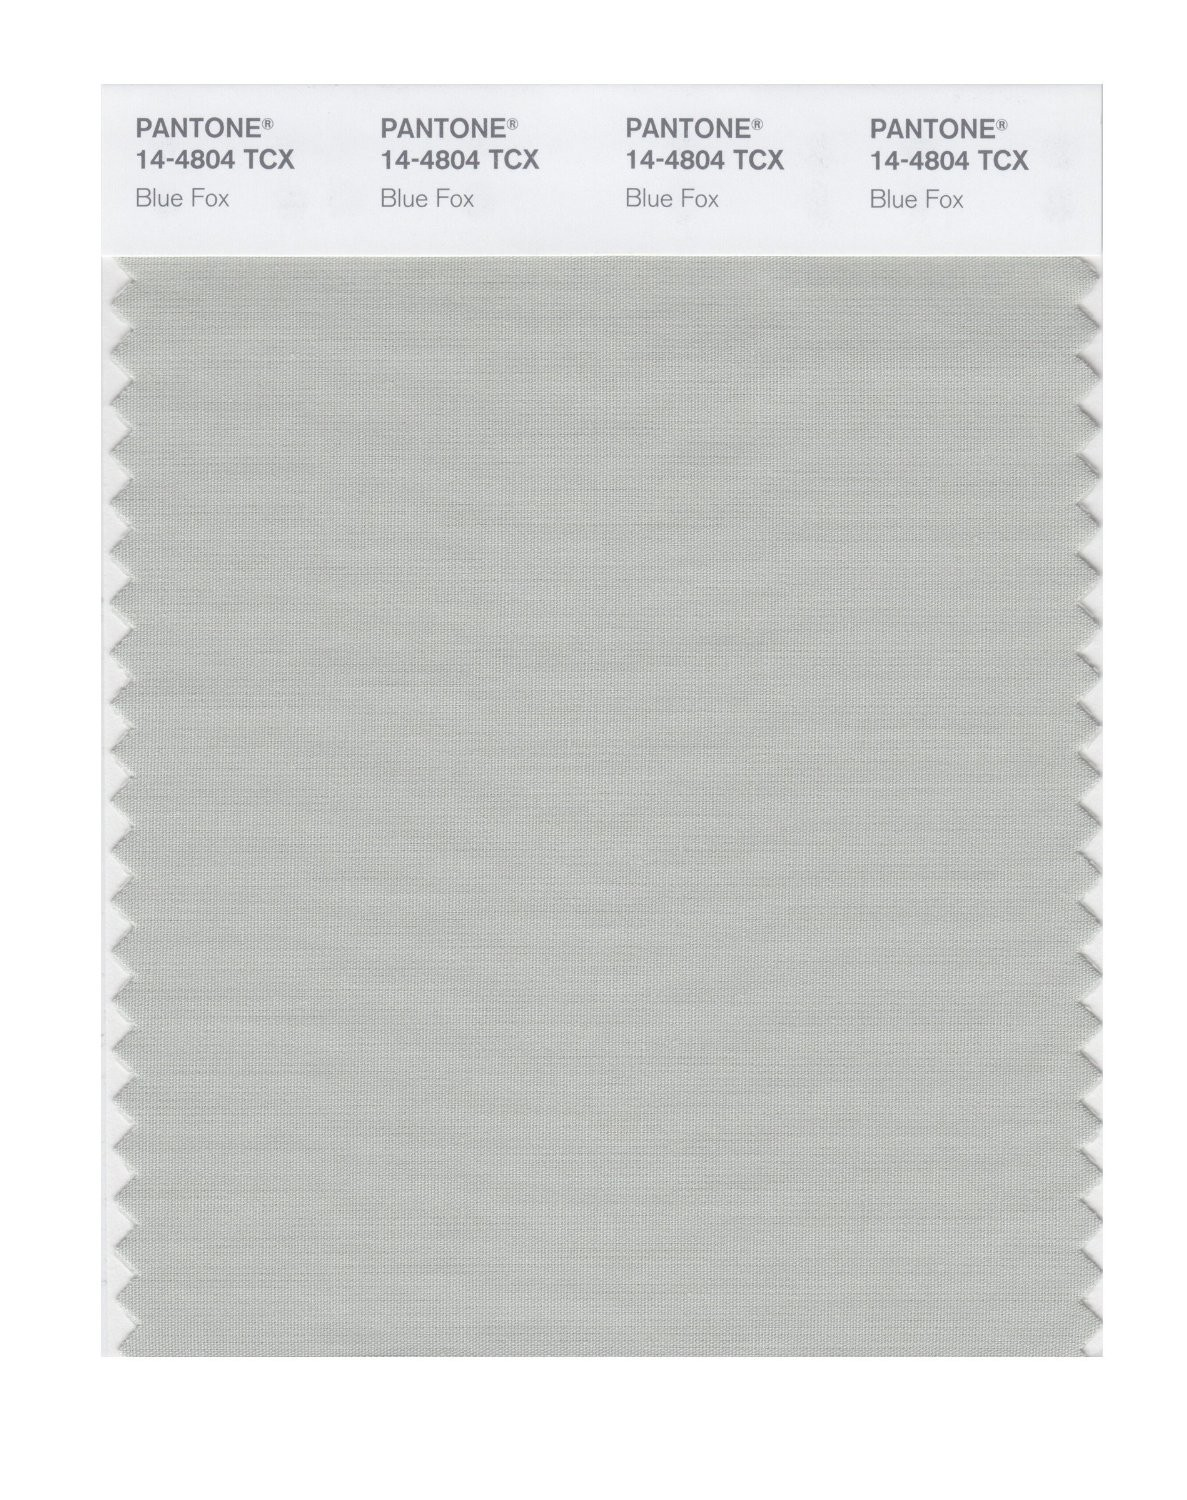 Pantone 14-4804 TCX Swatch Card Blue Fox